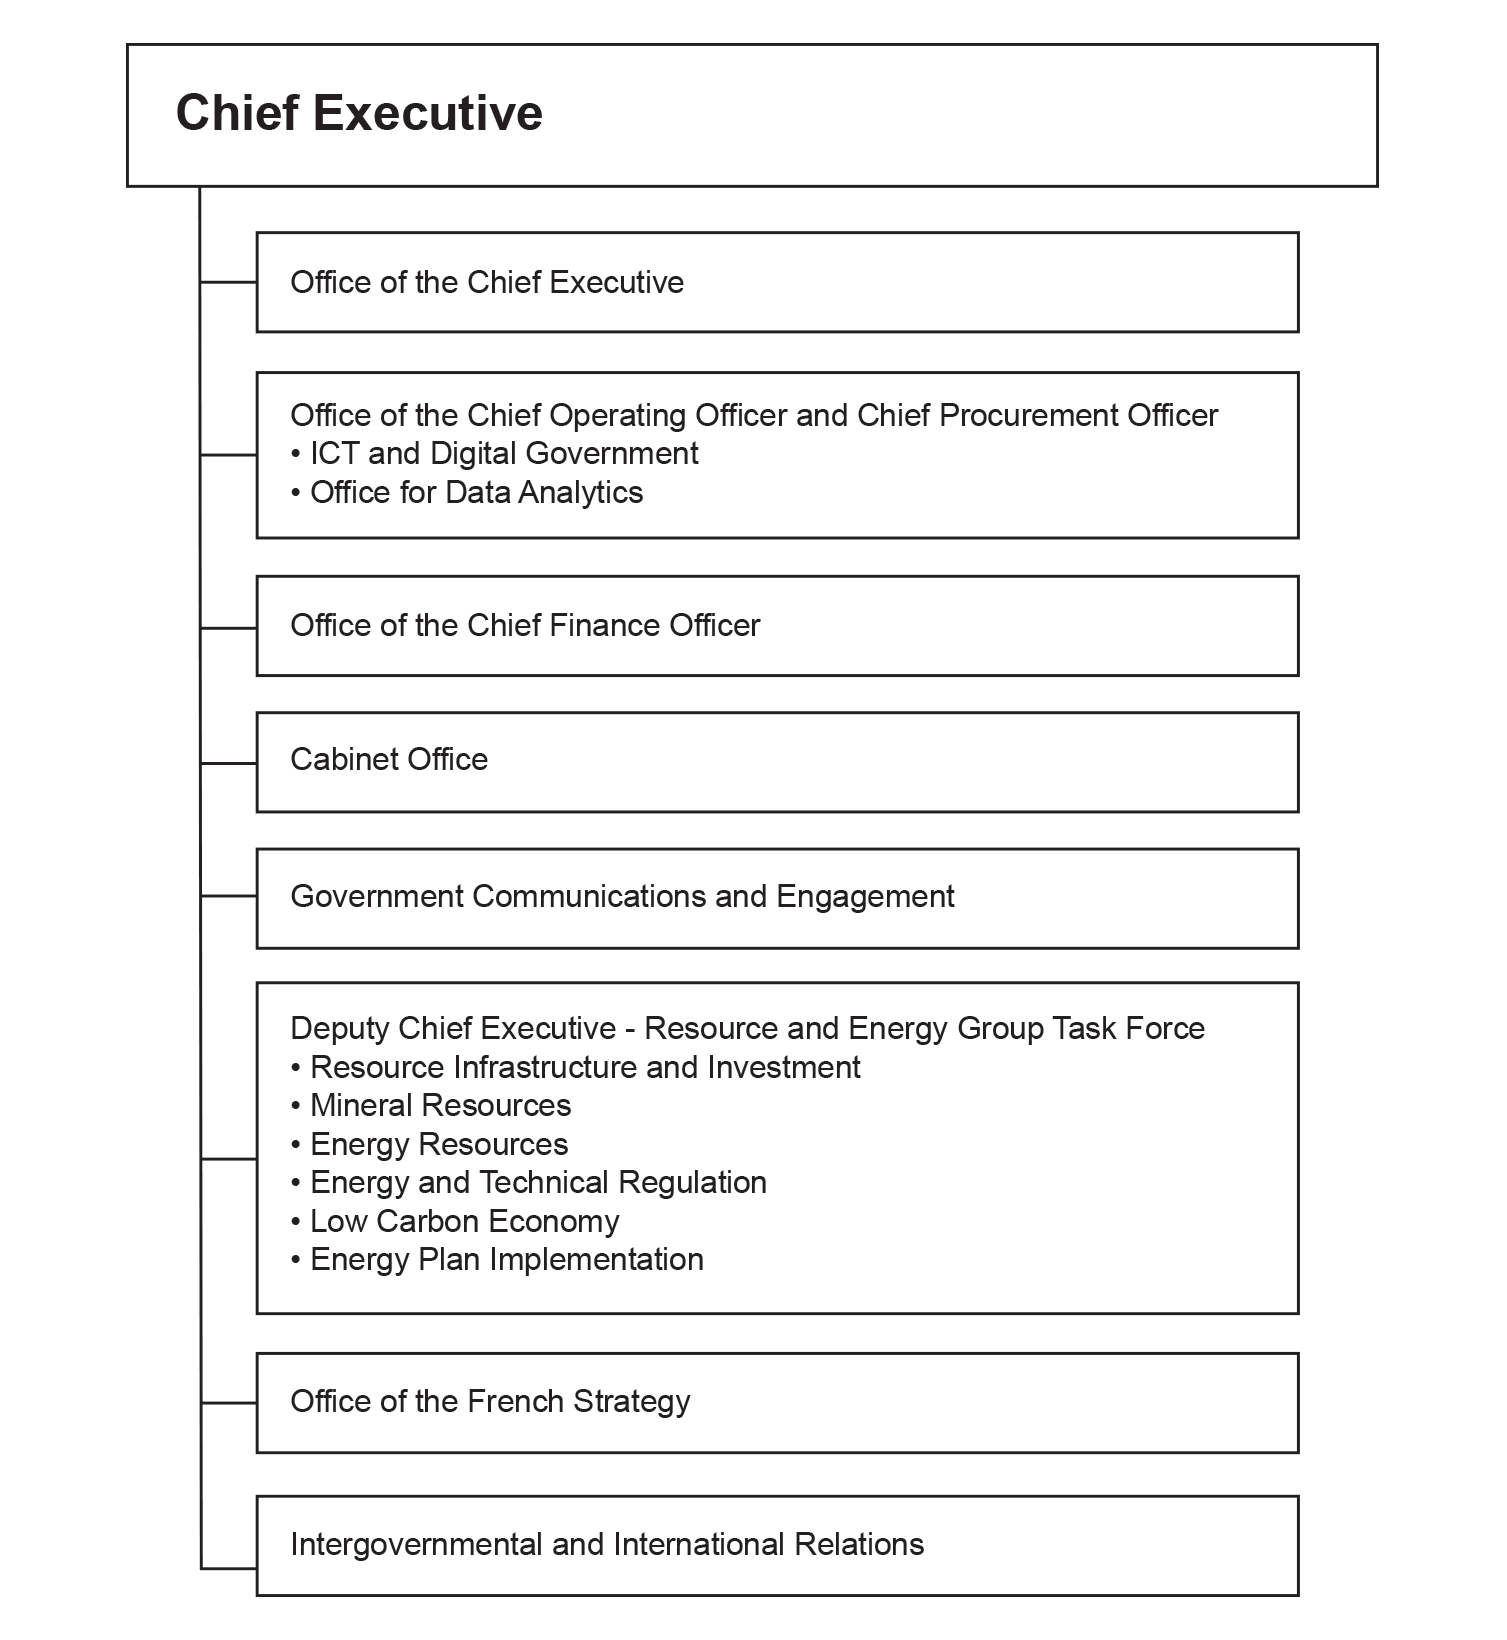 2017-18 Annual Report - Section A   Department of the ...